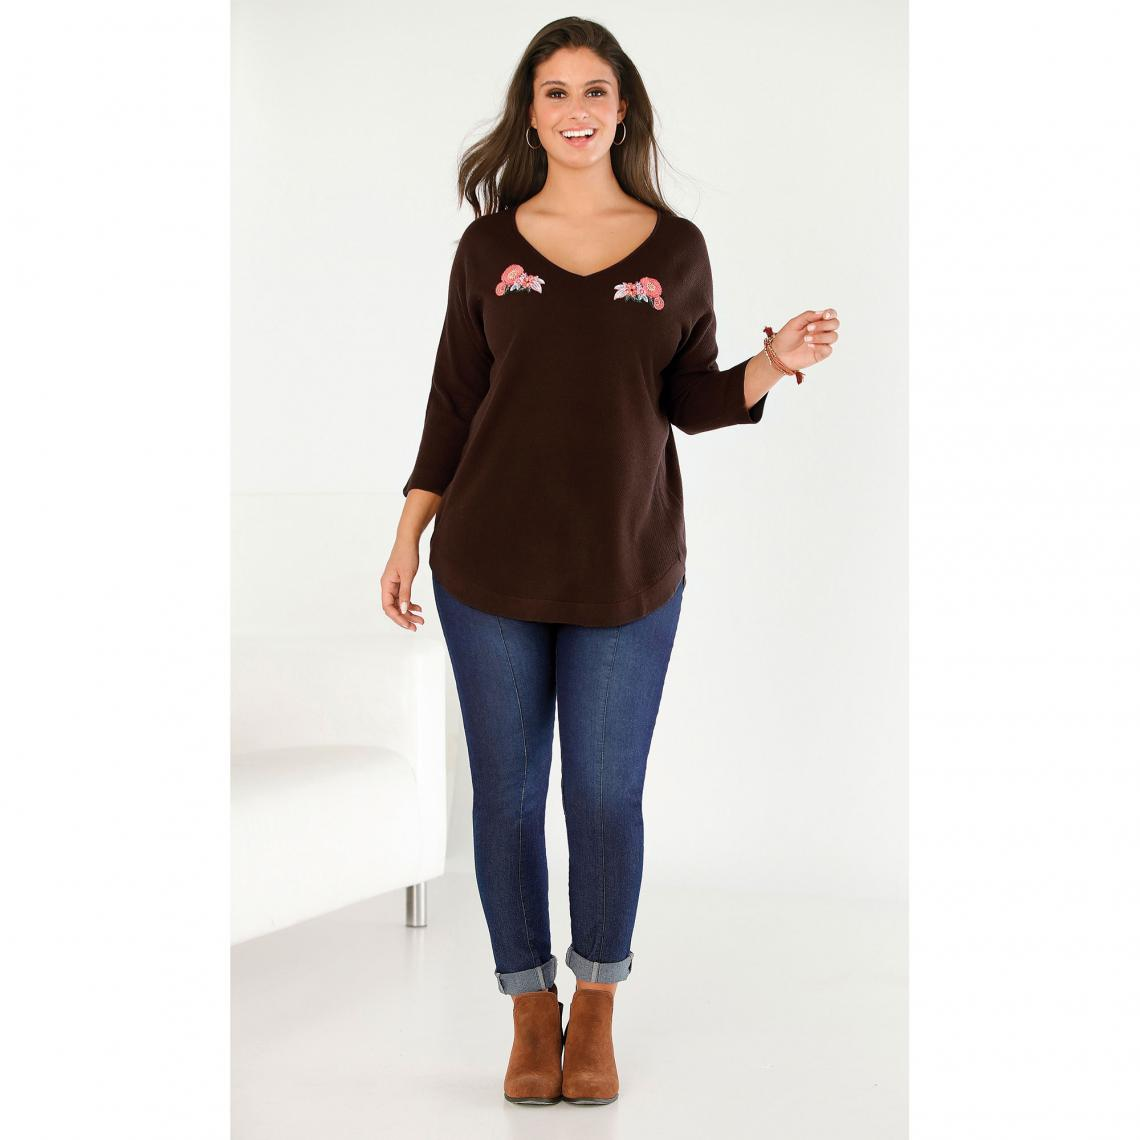 Pull broderie florale manches 3 4 grandes tailles femme - Marron ... ce953720088b